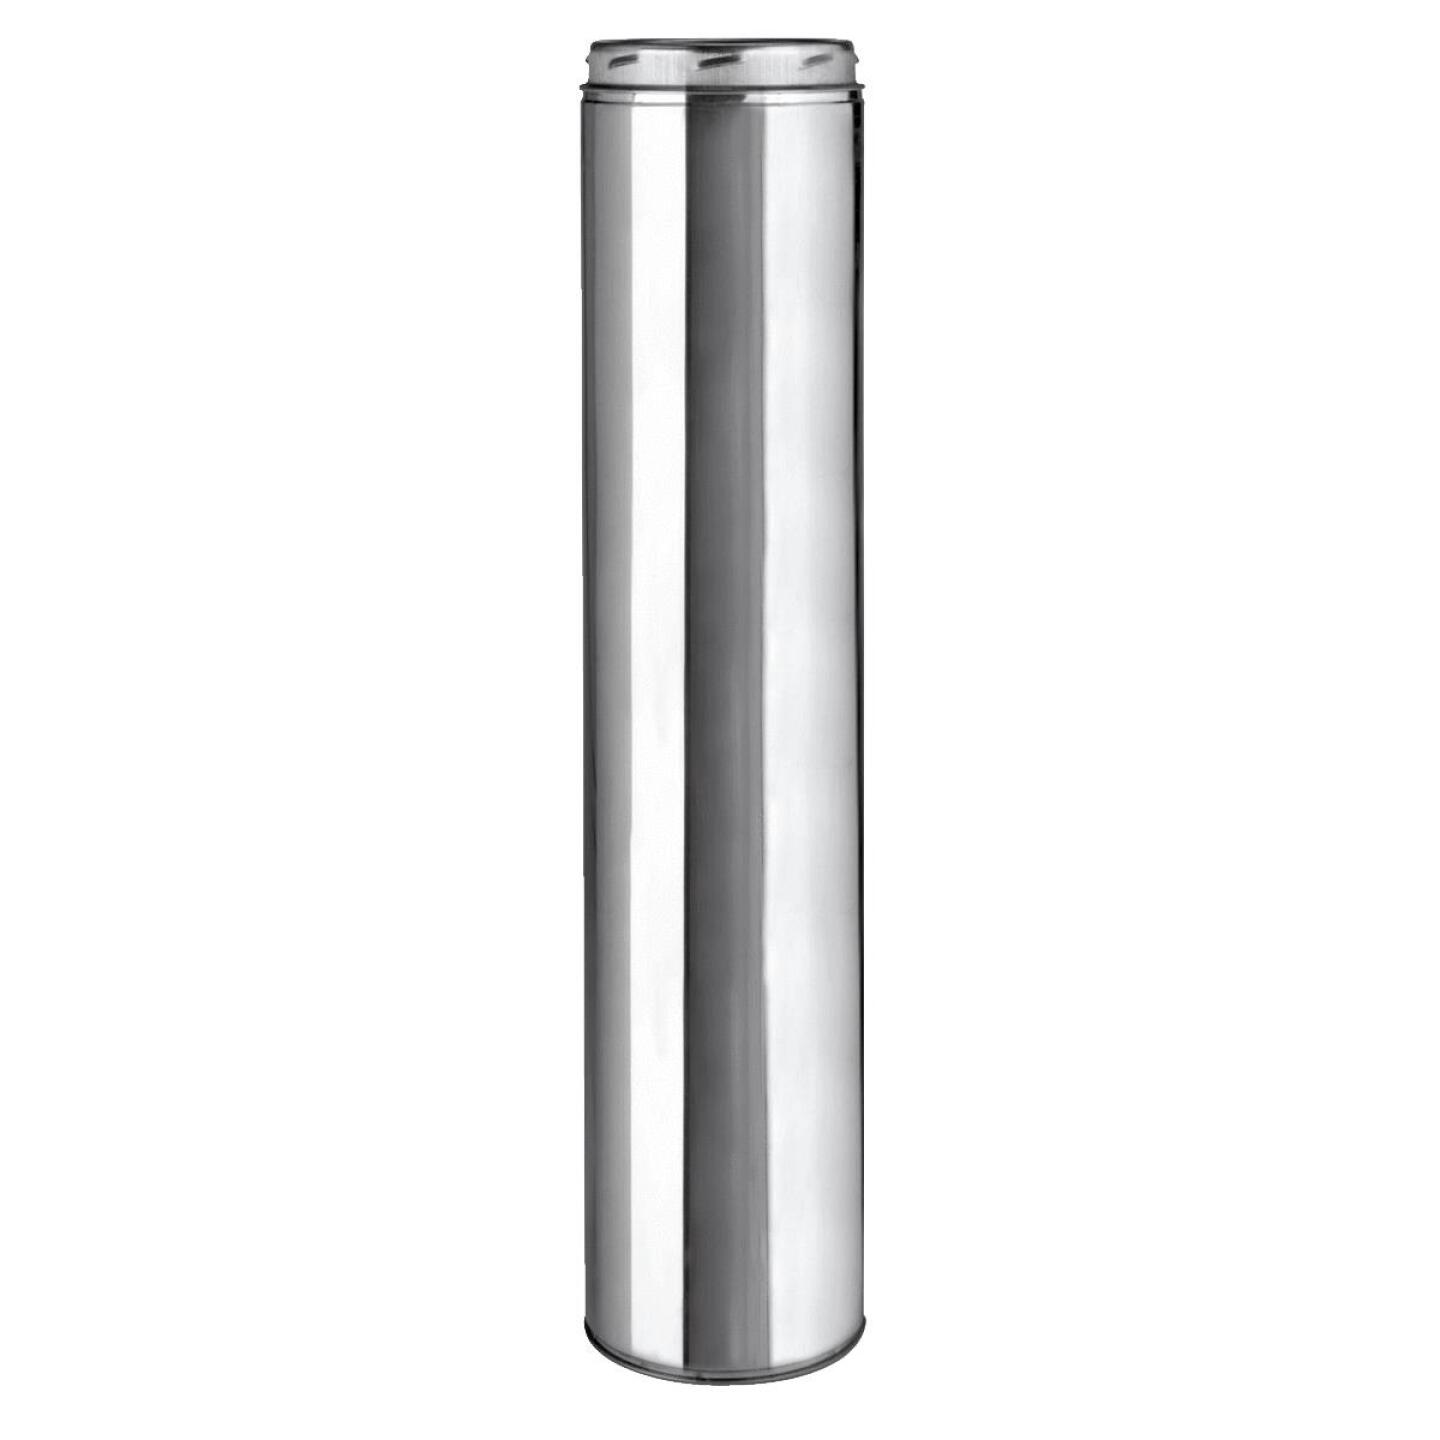 SELKIRK Sure-Temp 8 In. x 36 In. Stainless Steel Insulated Pipe Image 1